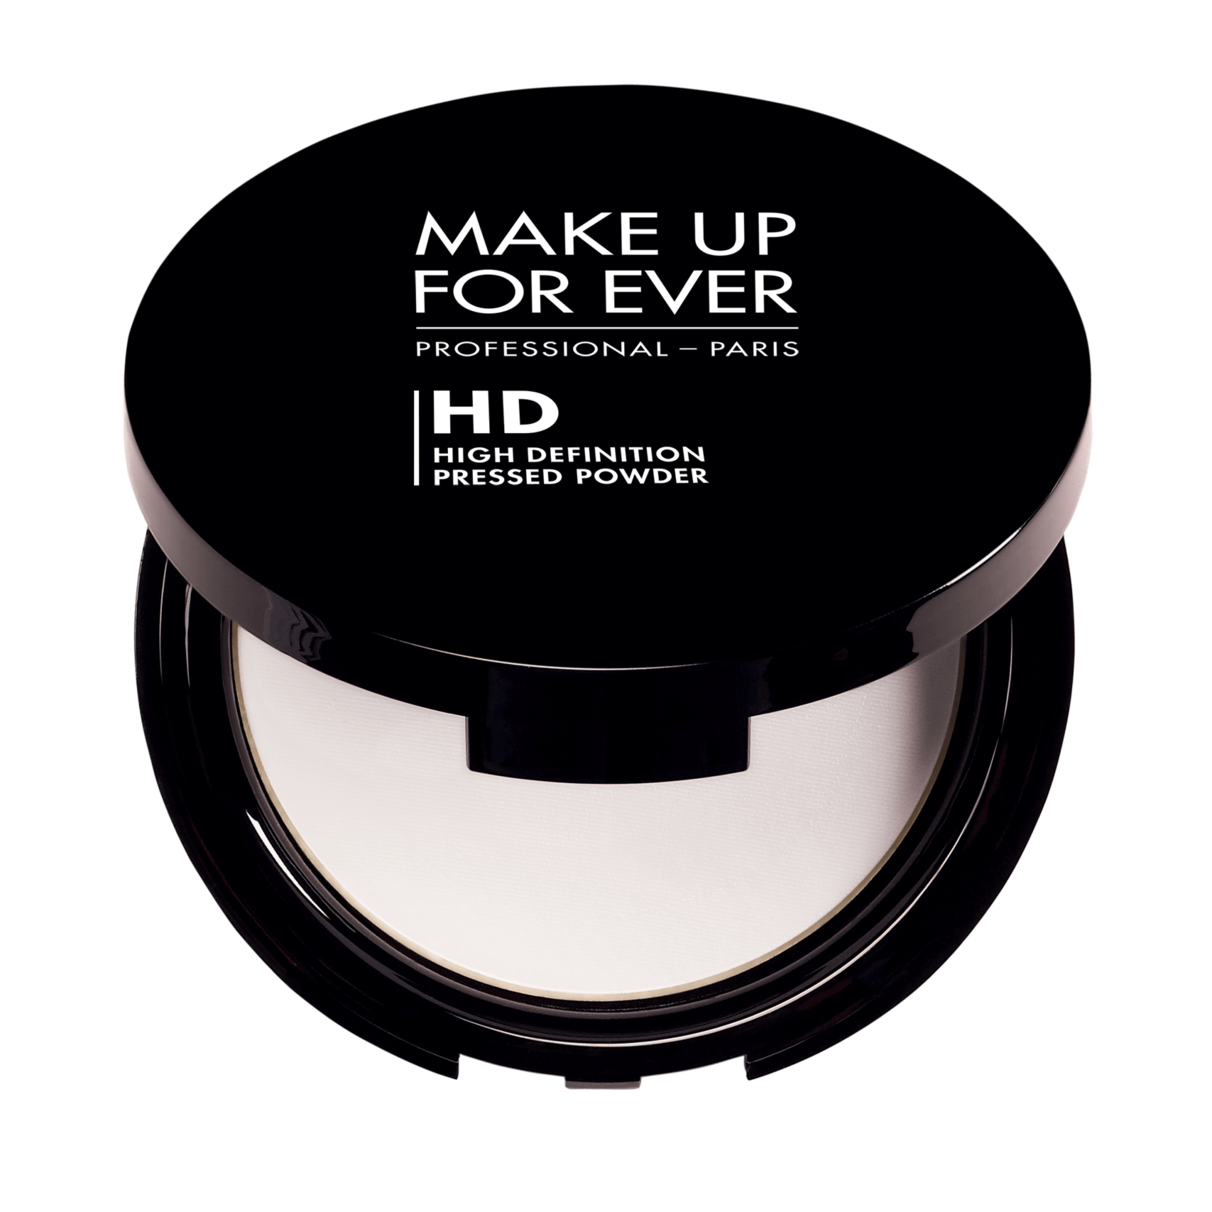 MAKE UP FOR EVER HD Pressed Powder Finishing Powder